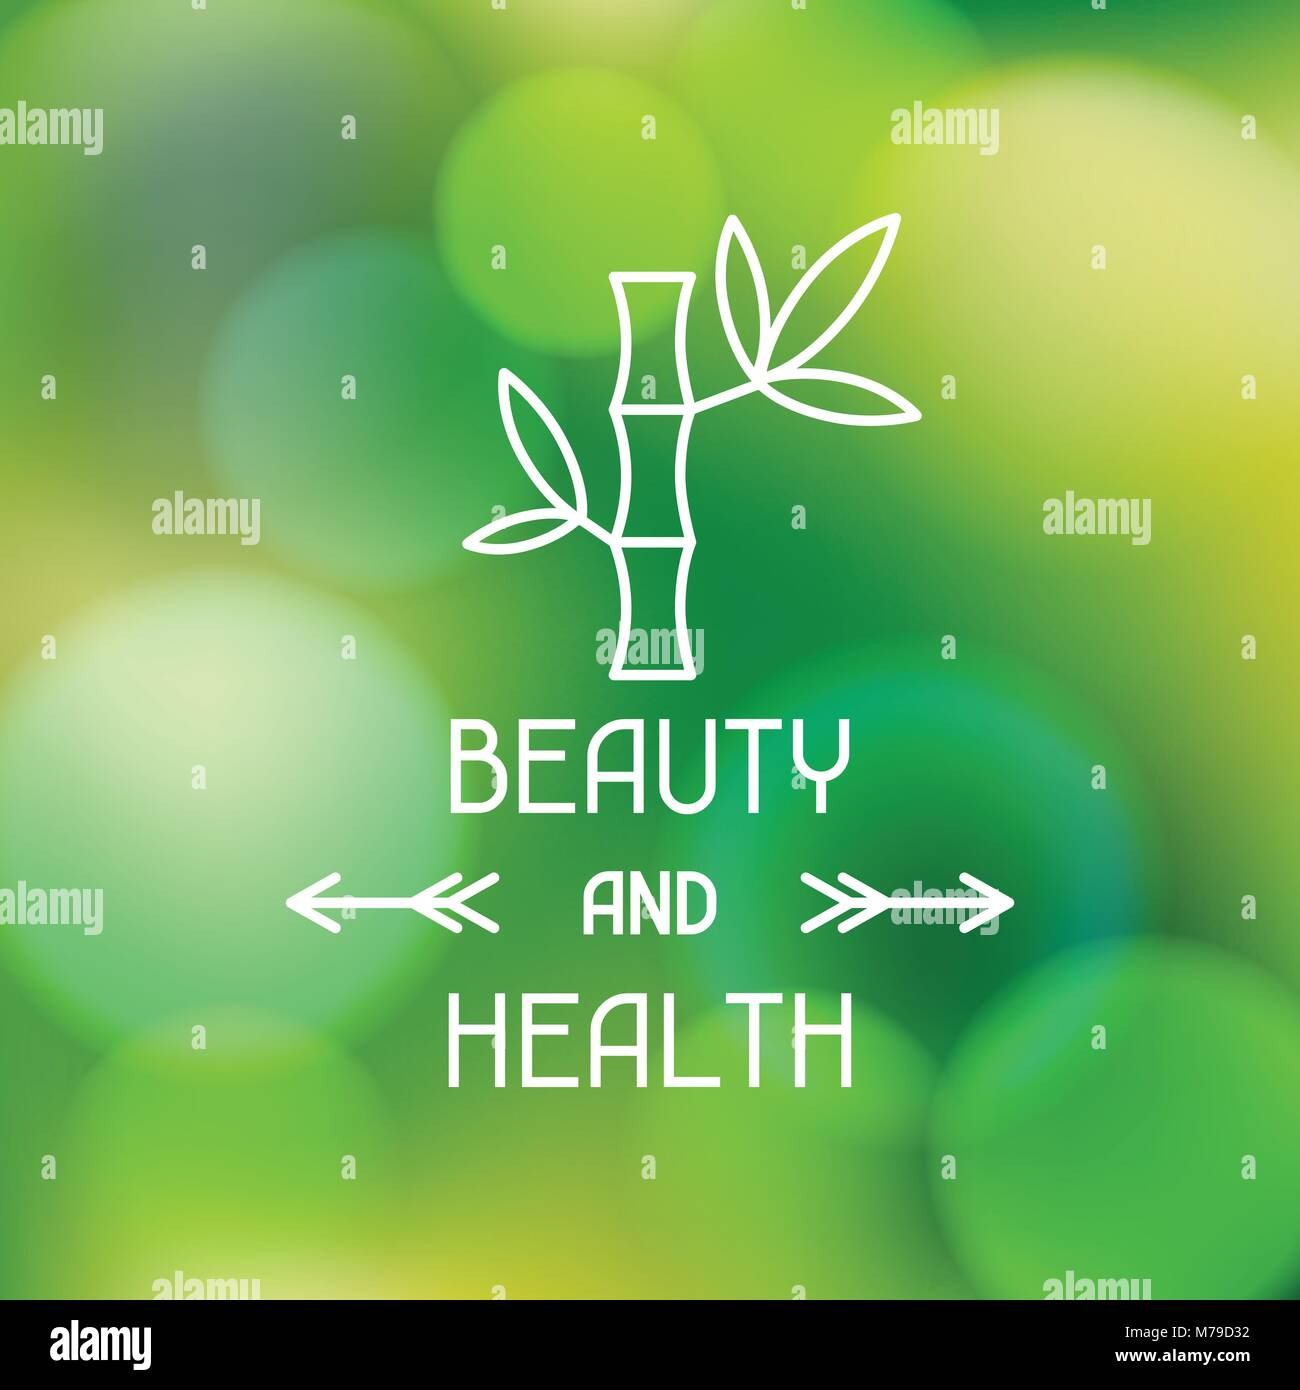 Spa beauty and health label on blurred background - Stock Vector